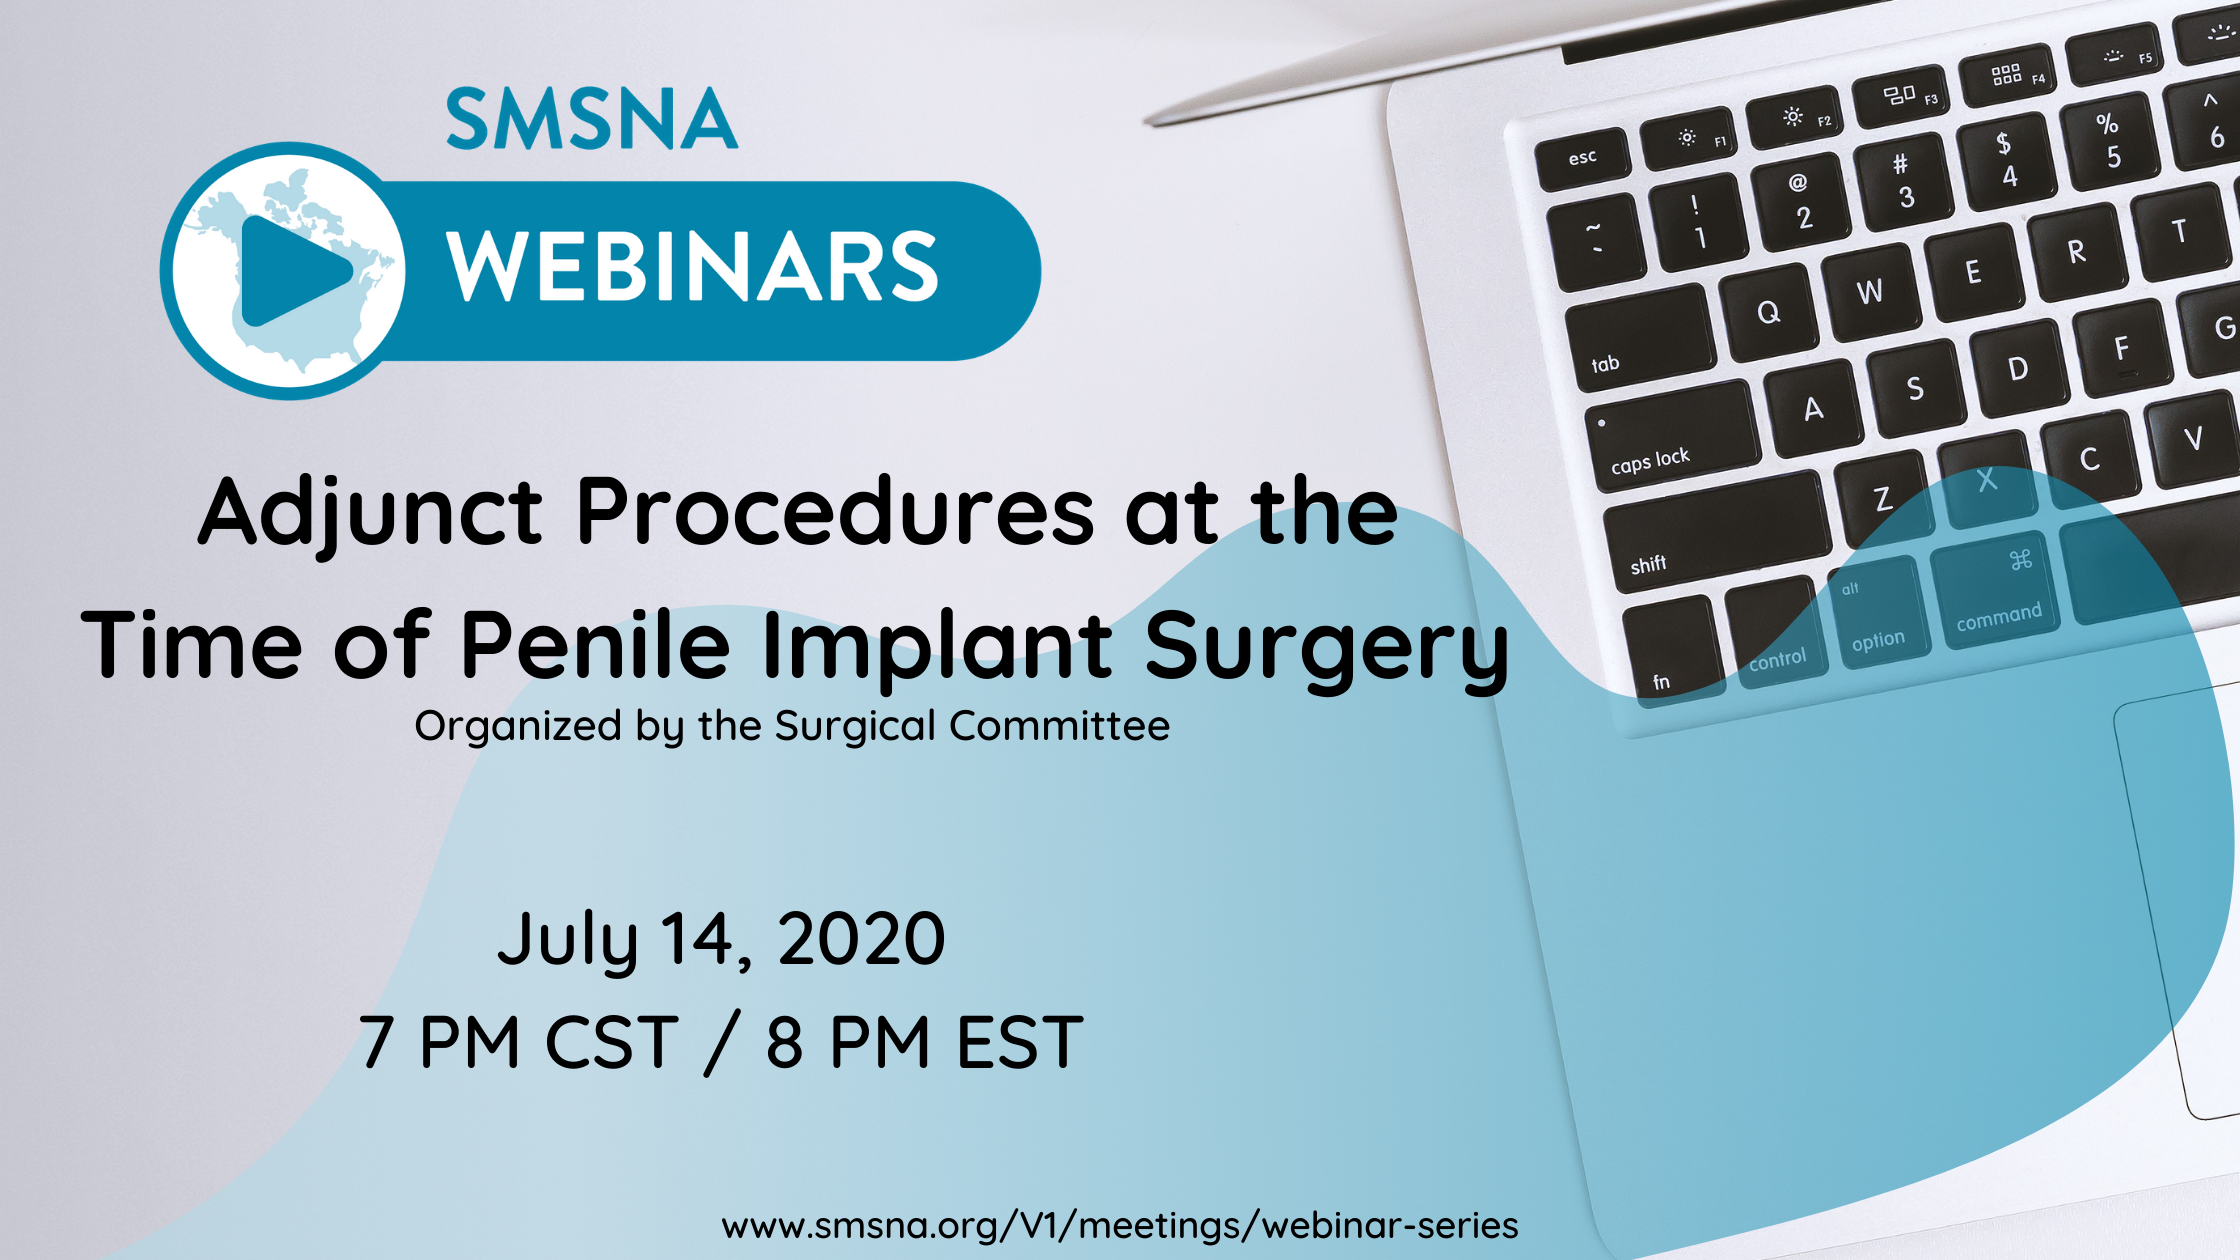 Adjunct Procedures at the Time of Penile Implant Surgery